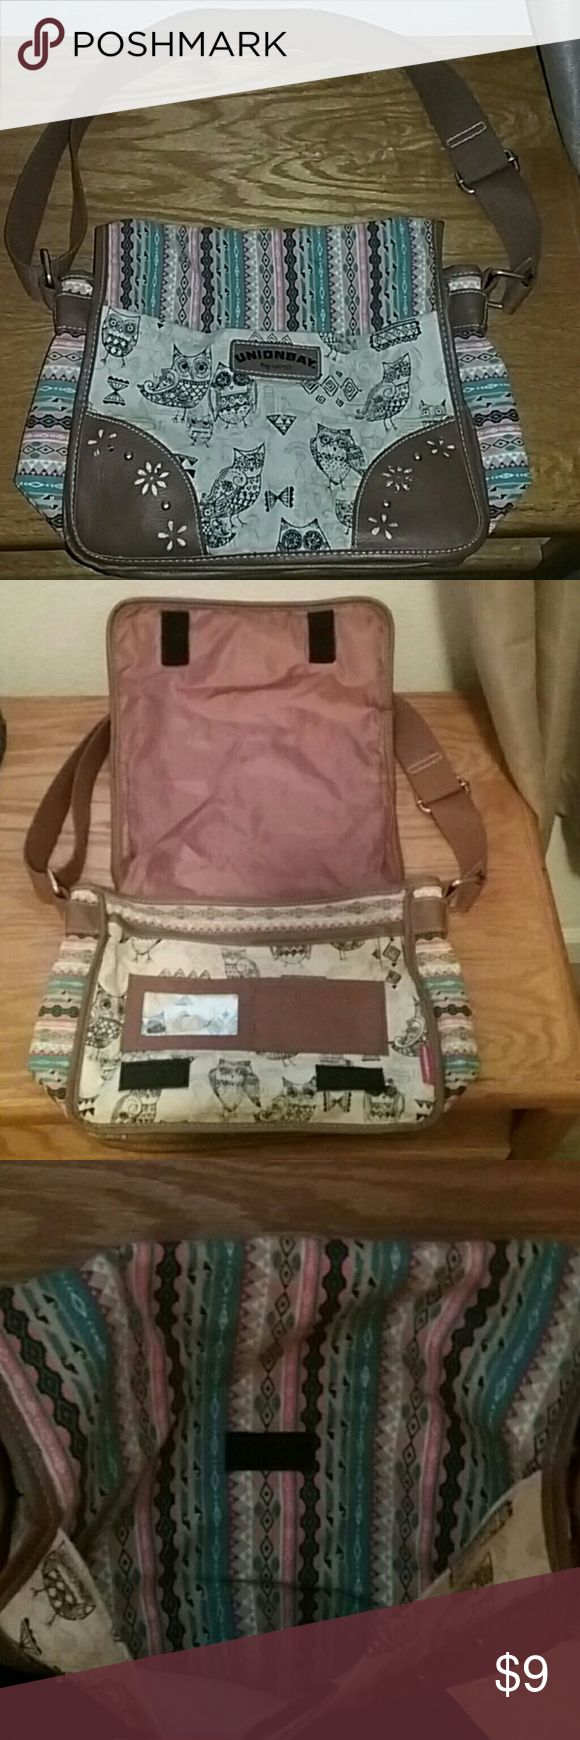 Union Bay crossbody purse Santa fe style . Plenty of pockets to put everything you need for the day. Clear ID holder 3 credit card pockets. Roomy front pocket w velcro flap. Cell phone pocket, zipper pocket inside main part. Really cute bag UNIONBAY Bags Crossbody Bags